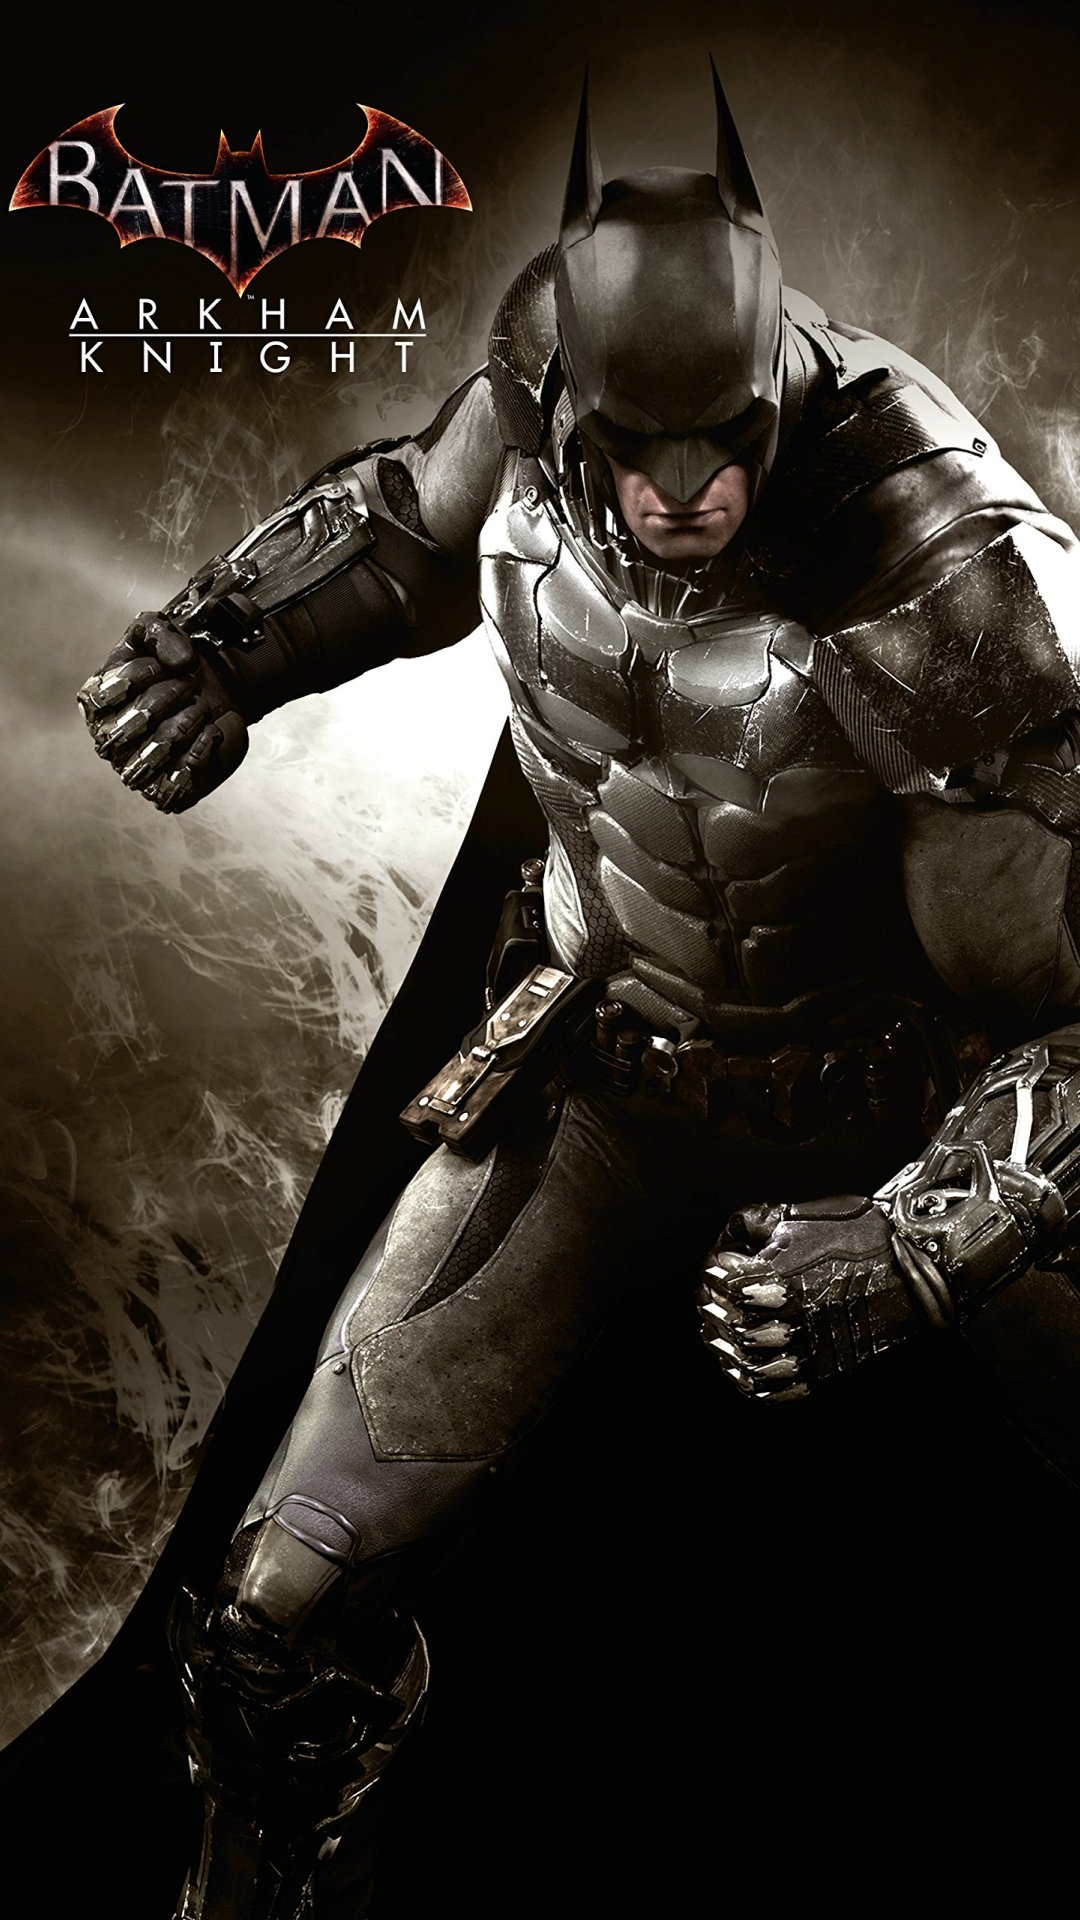 Batman Arkham Knight Batman Art Wallpapers 1080x1920 310015